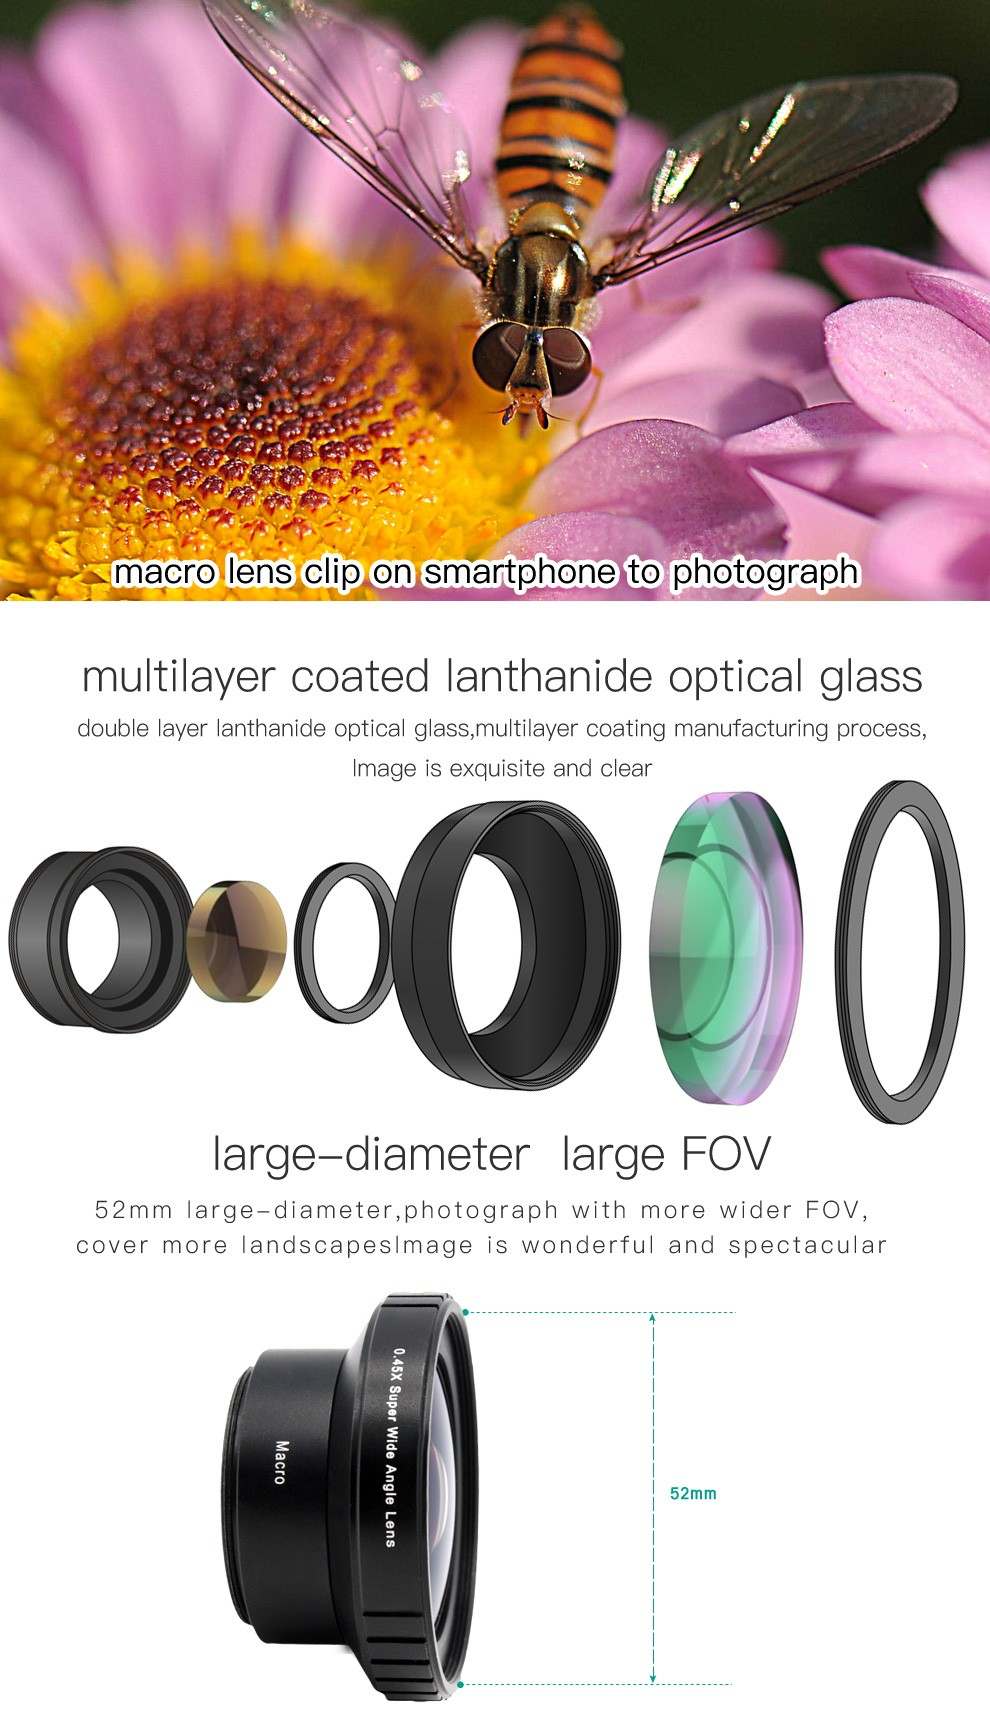 Lens Kit 0.45x Super Wide Angle Lens 15x Super Macro Lens Shop Interior Design For Mobile Phone Accessories